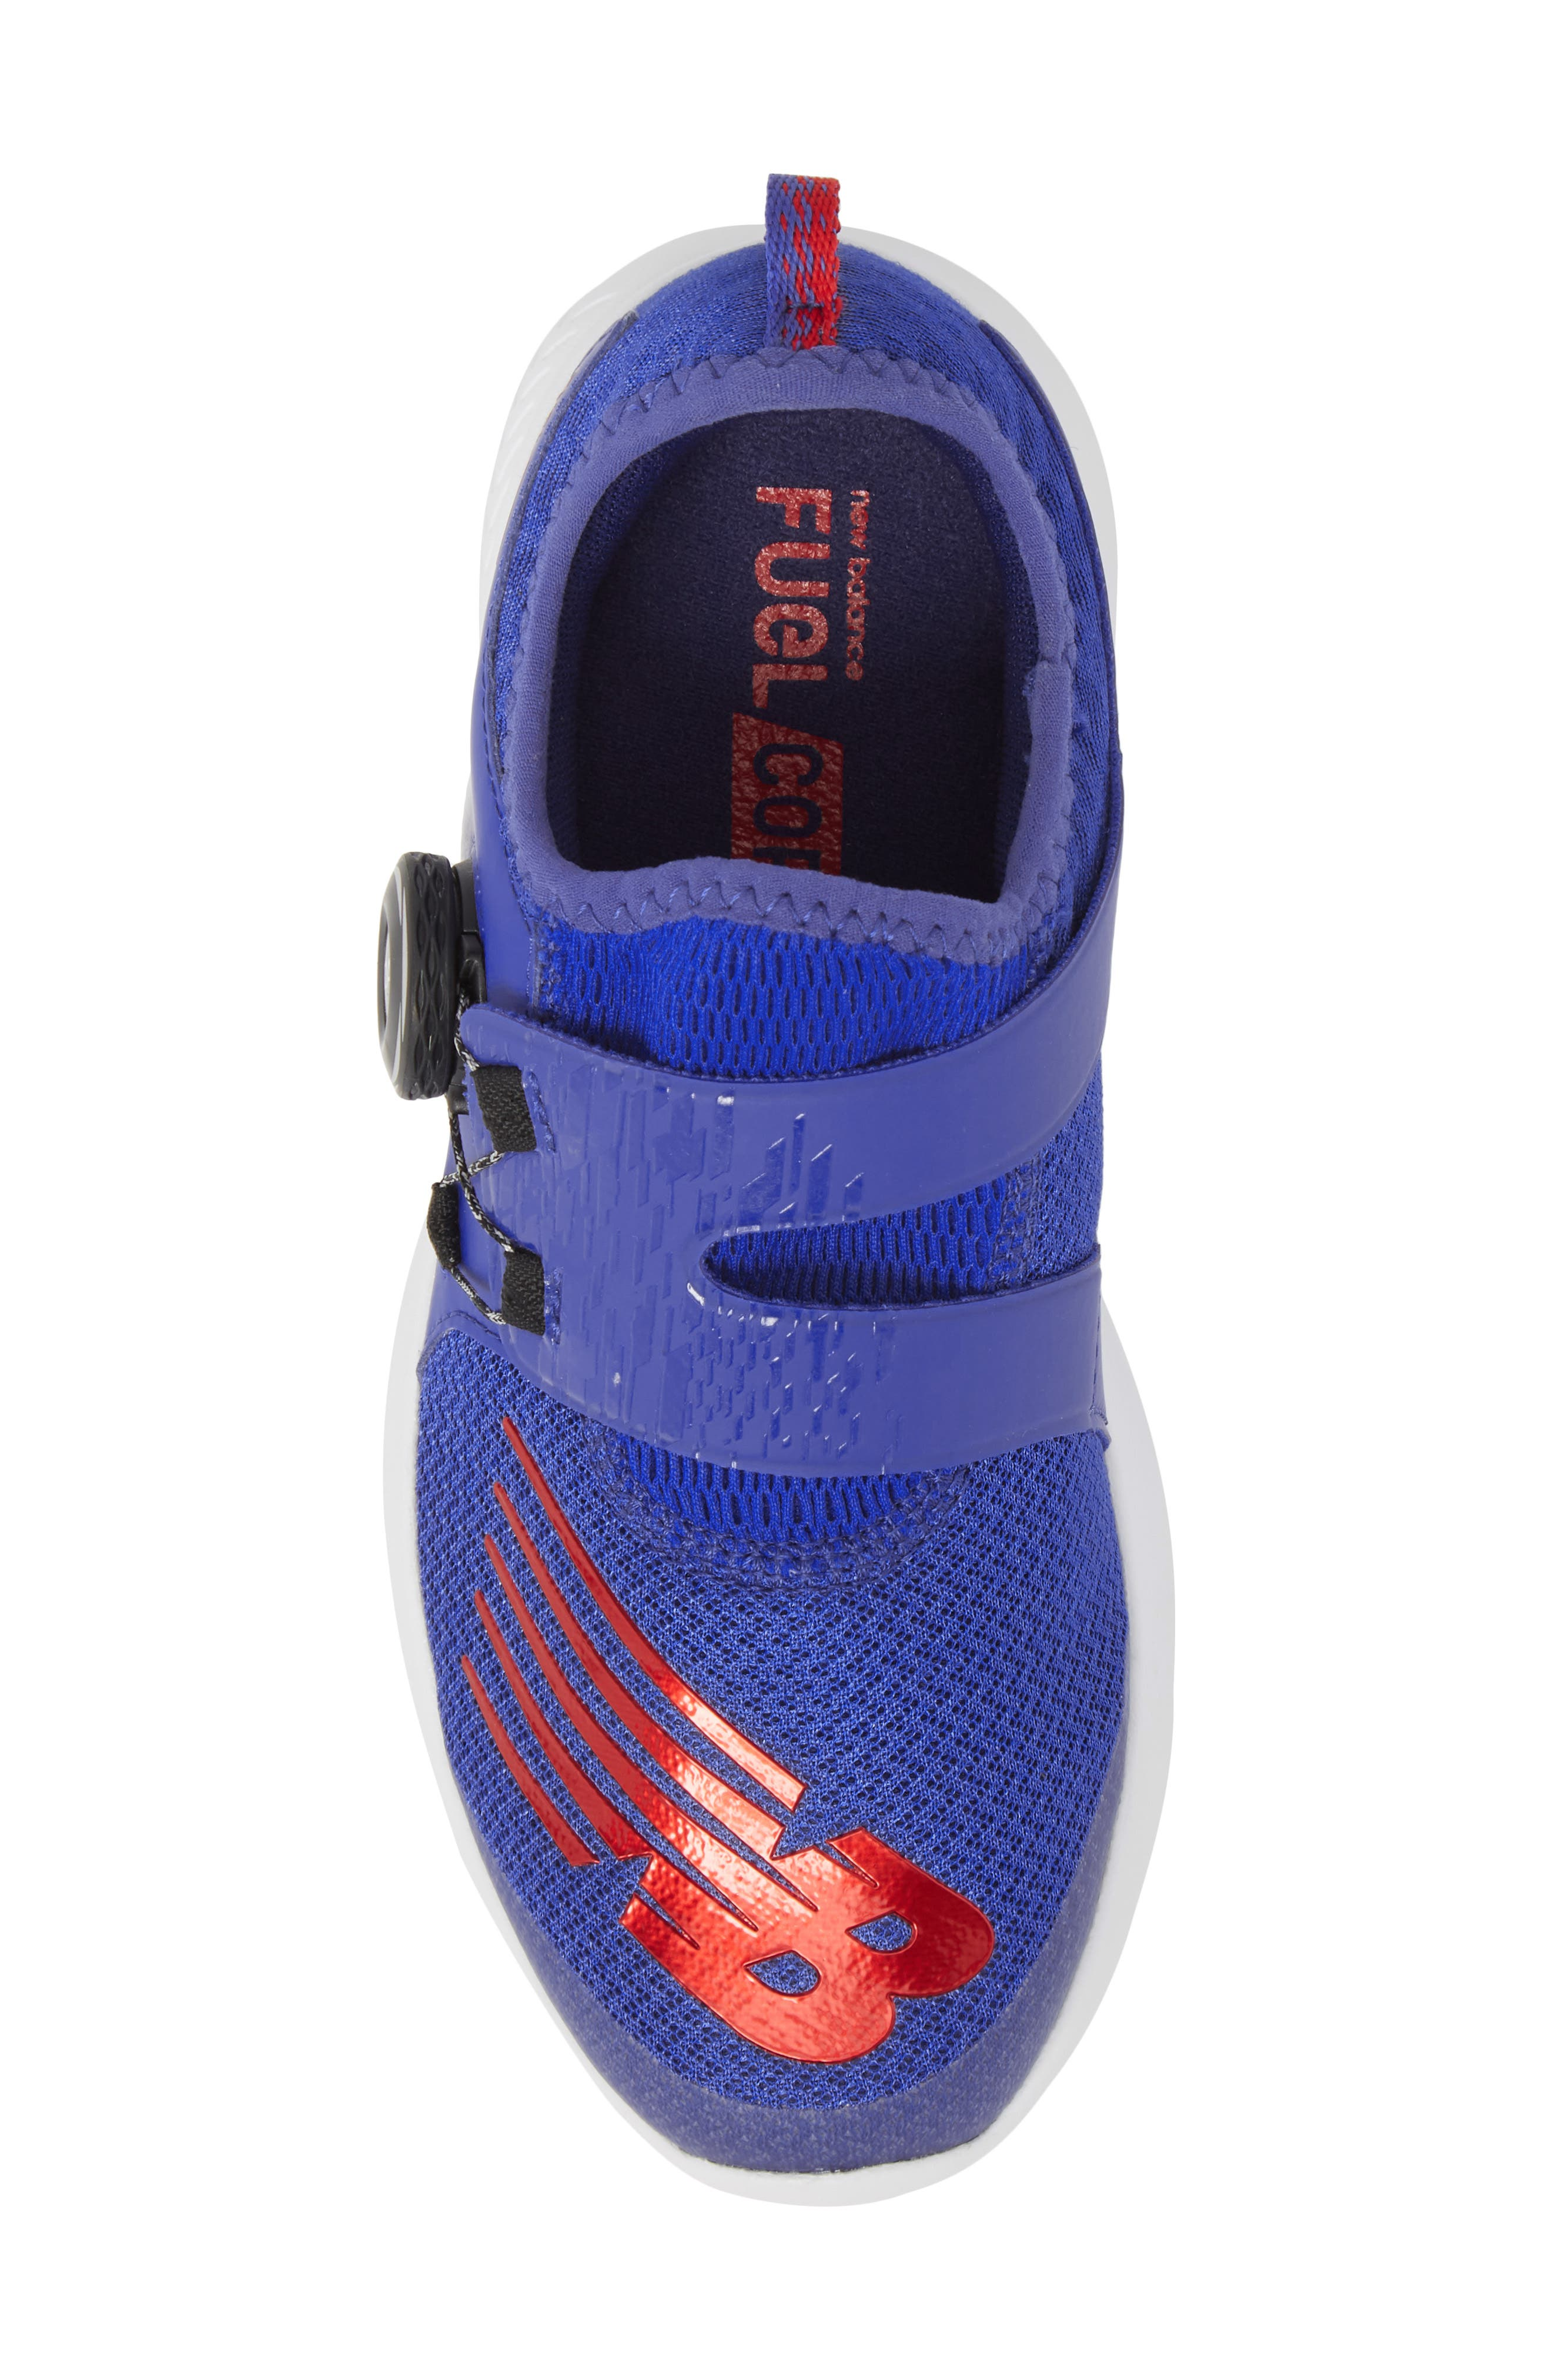 BKO Running Shoe,                             Alternate thumbnail 15, color,